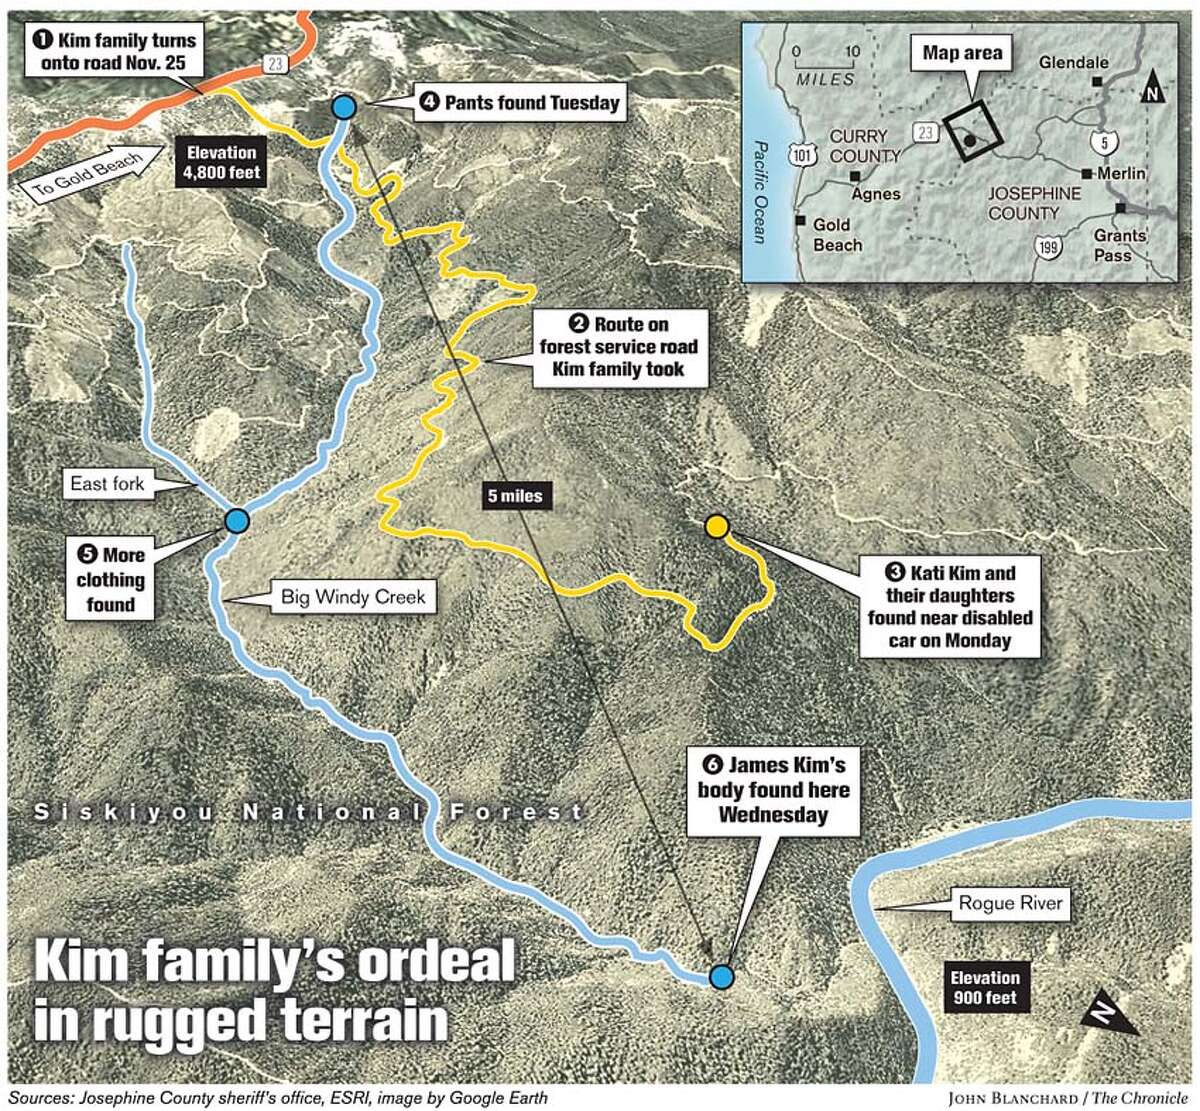 Kim family's ordeal in rugged terrain. Chronicle graphic by John Blanchard